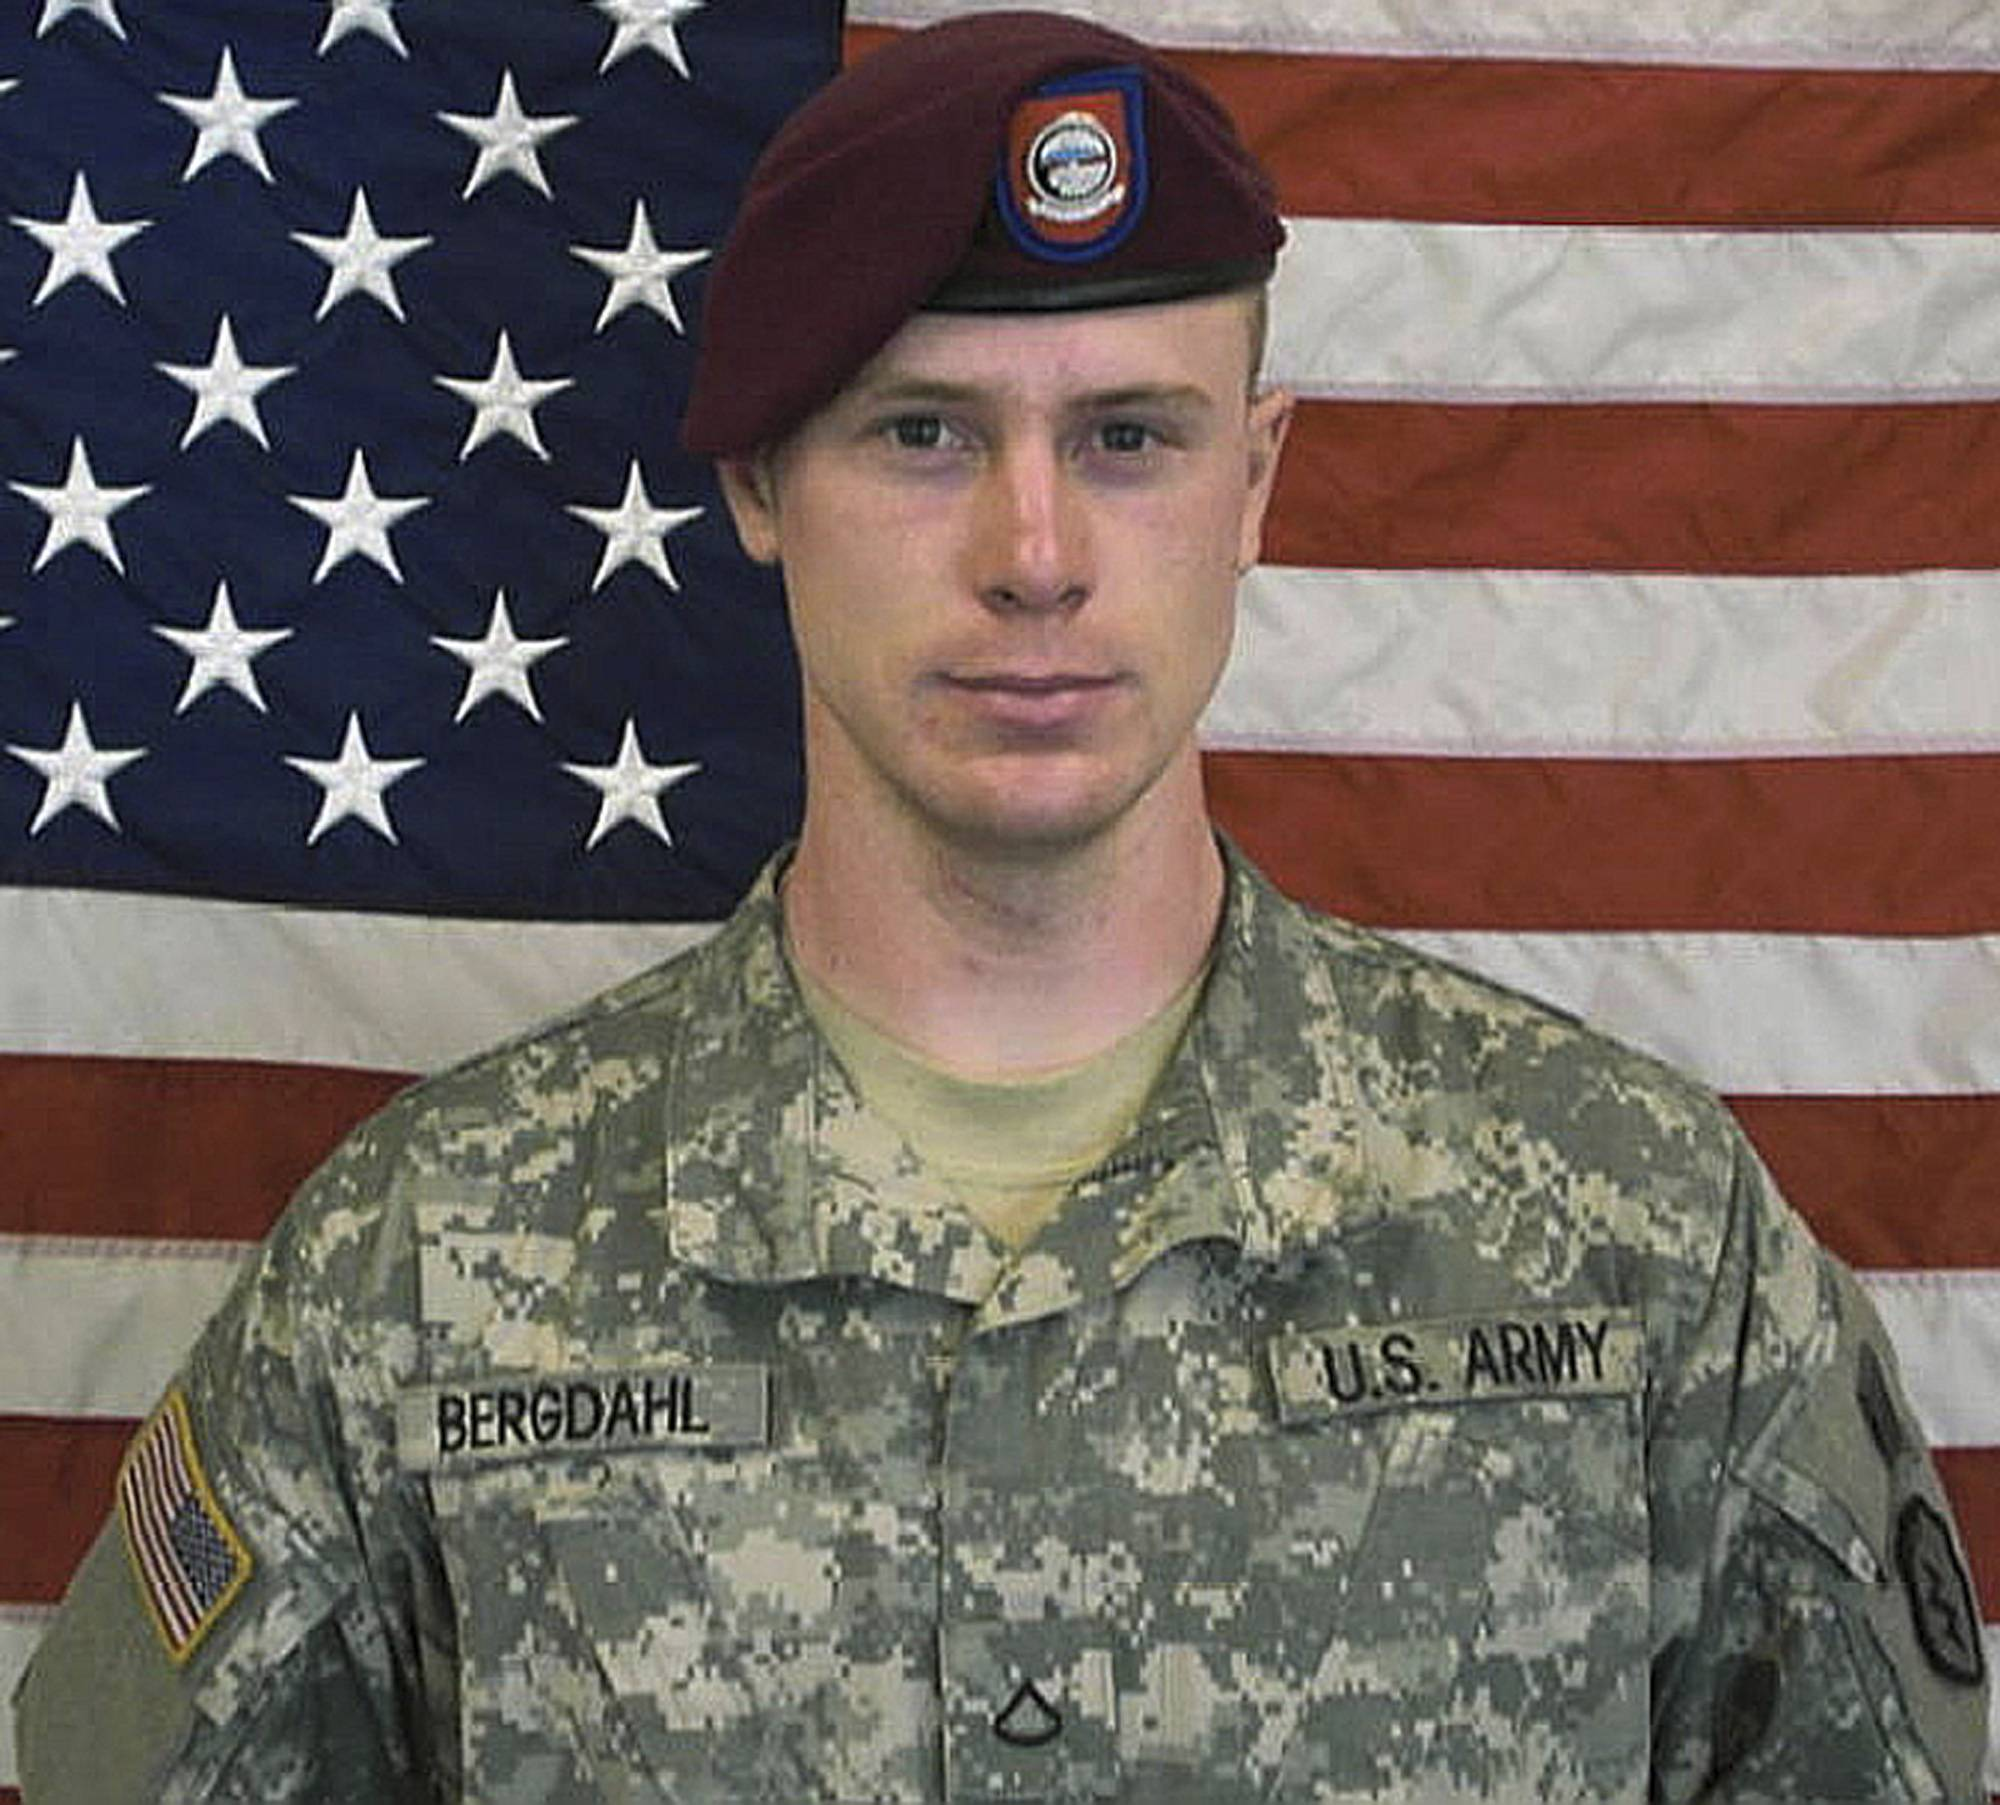 The U.S. Army shows Sgt. Bowe Bergdahl.